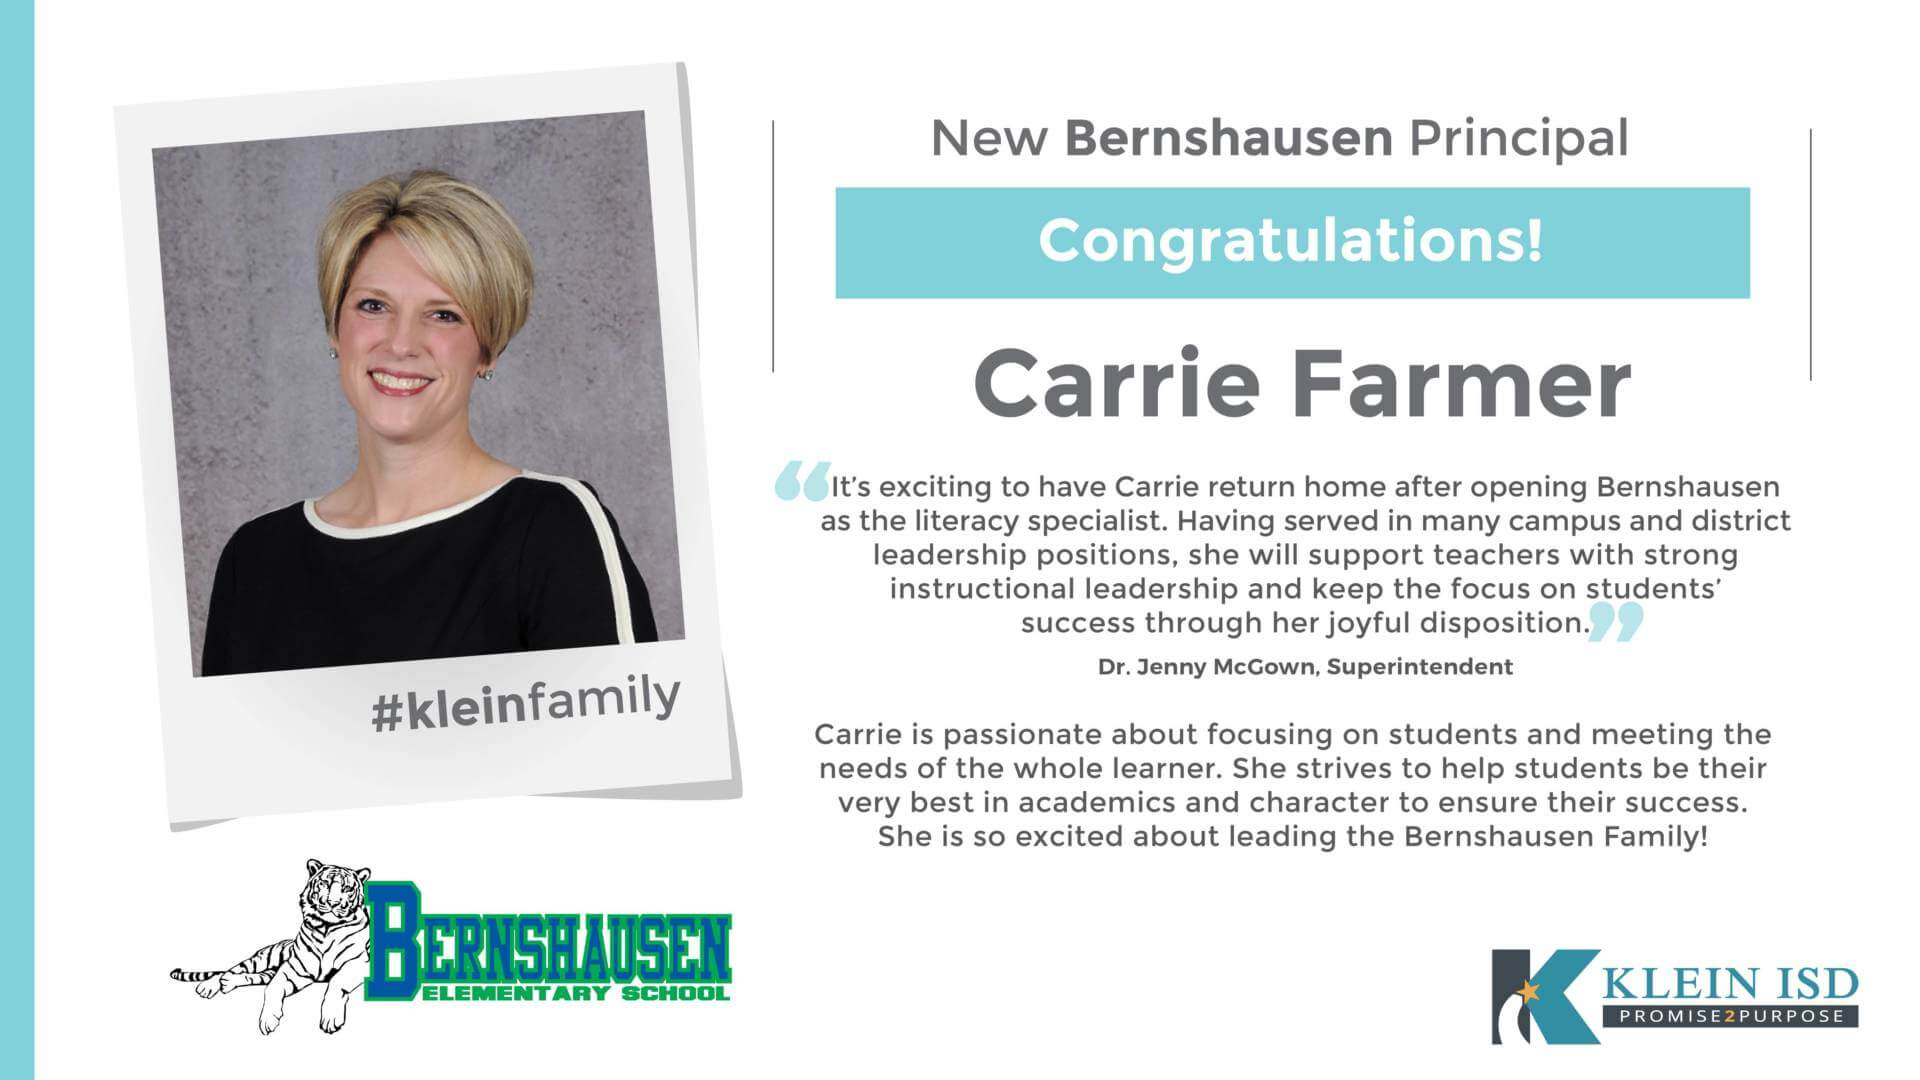 Carrie Farmer Announced as Bernshausen Elementary Principal